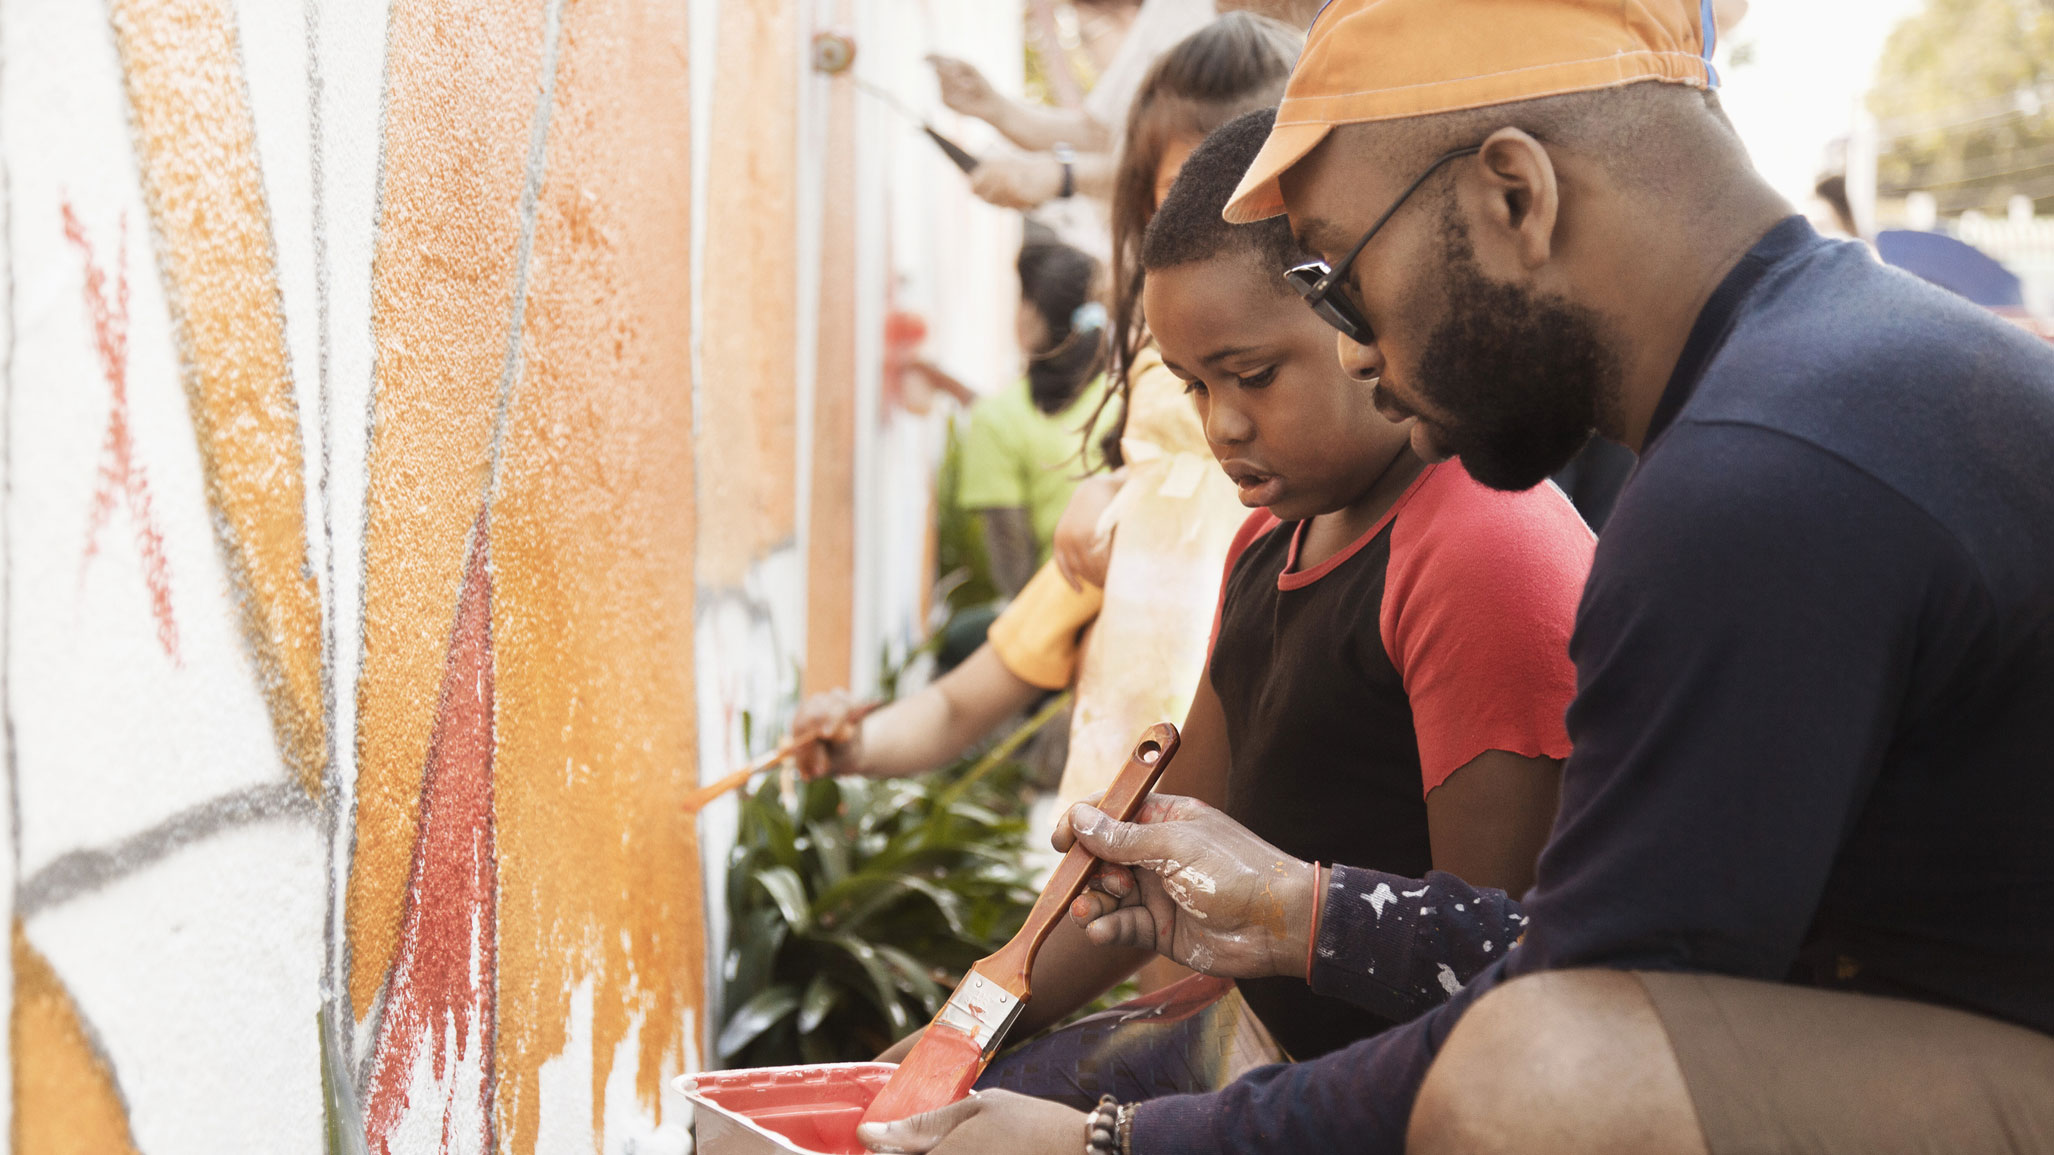 Man helping child paint a wall while volunteering